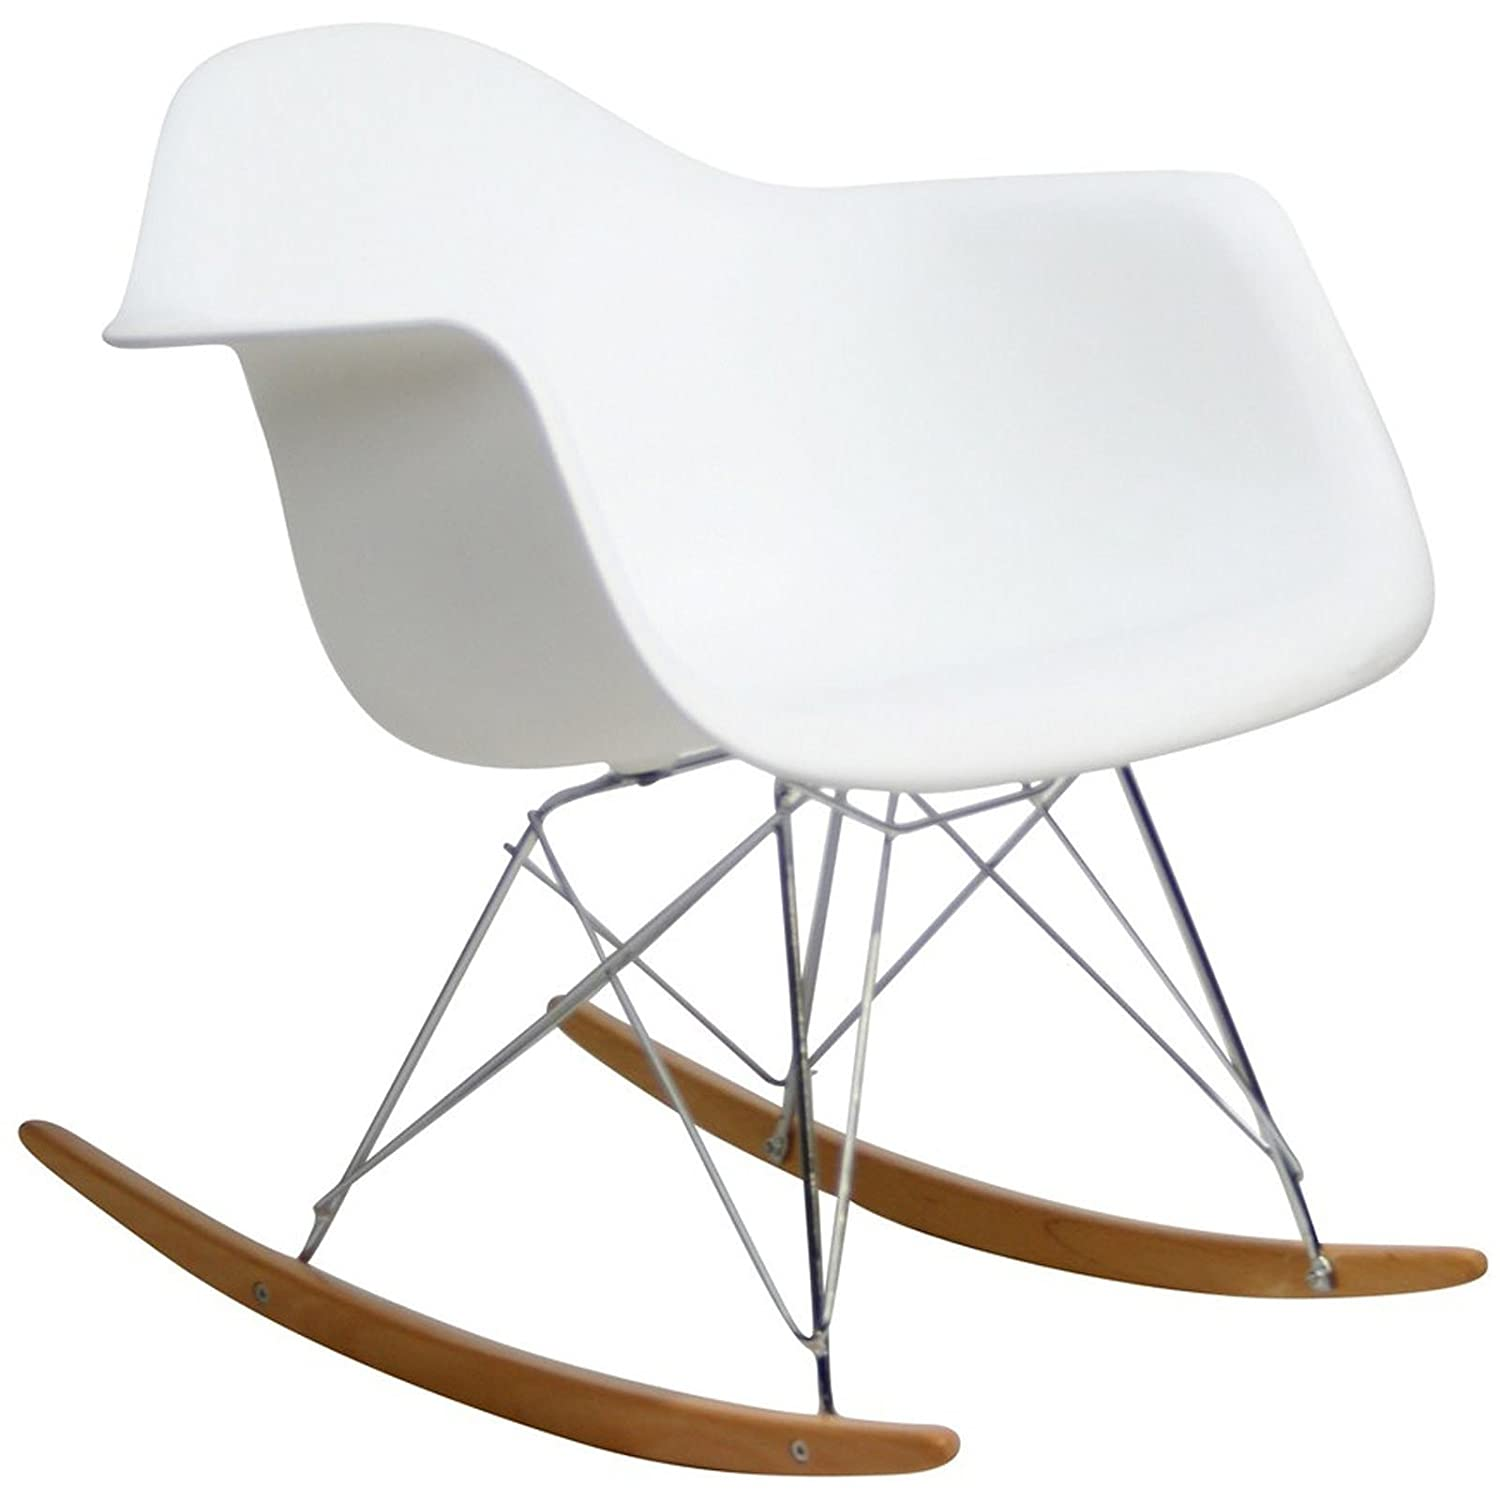 Eames chair white plastic - Amazon Com Modway Molded Plastic Armchair Rocker In White Kitchen Dining